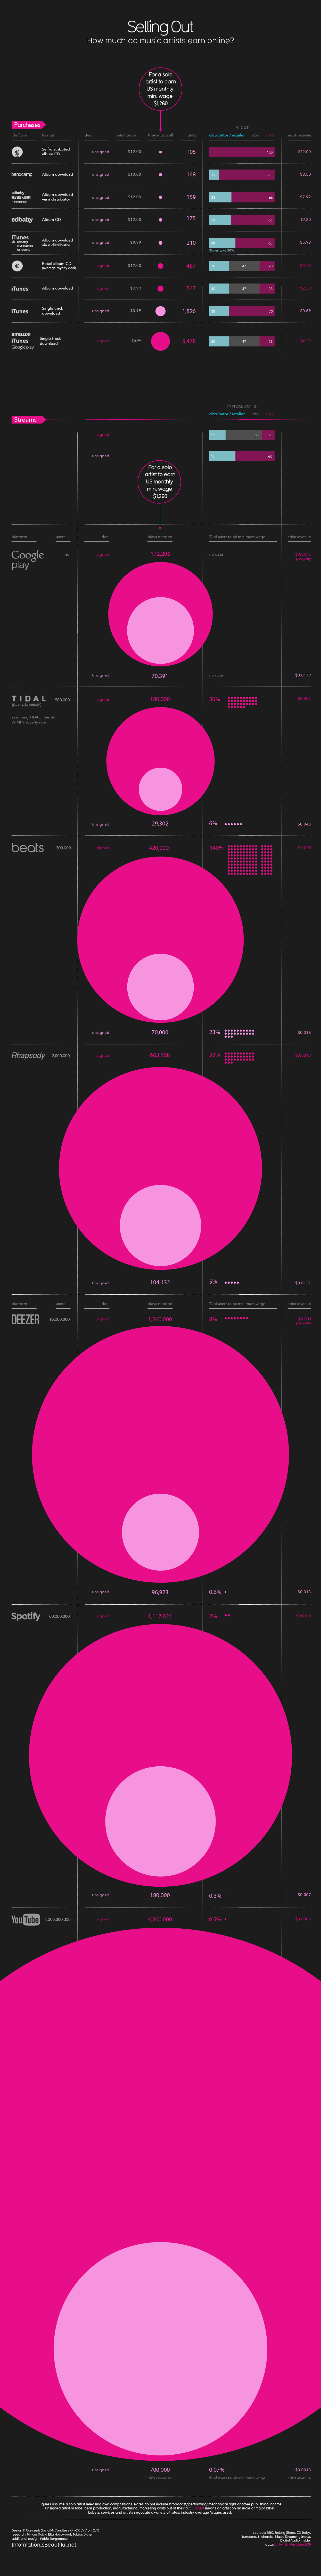 Do digital music streaming services rip off artists? http://www.informationisbeautiful.net/visualizations/how-much-do-music-artists-earn-online-2015-remix/